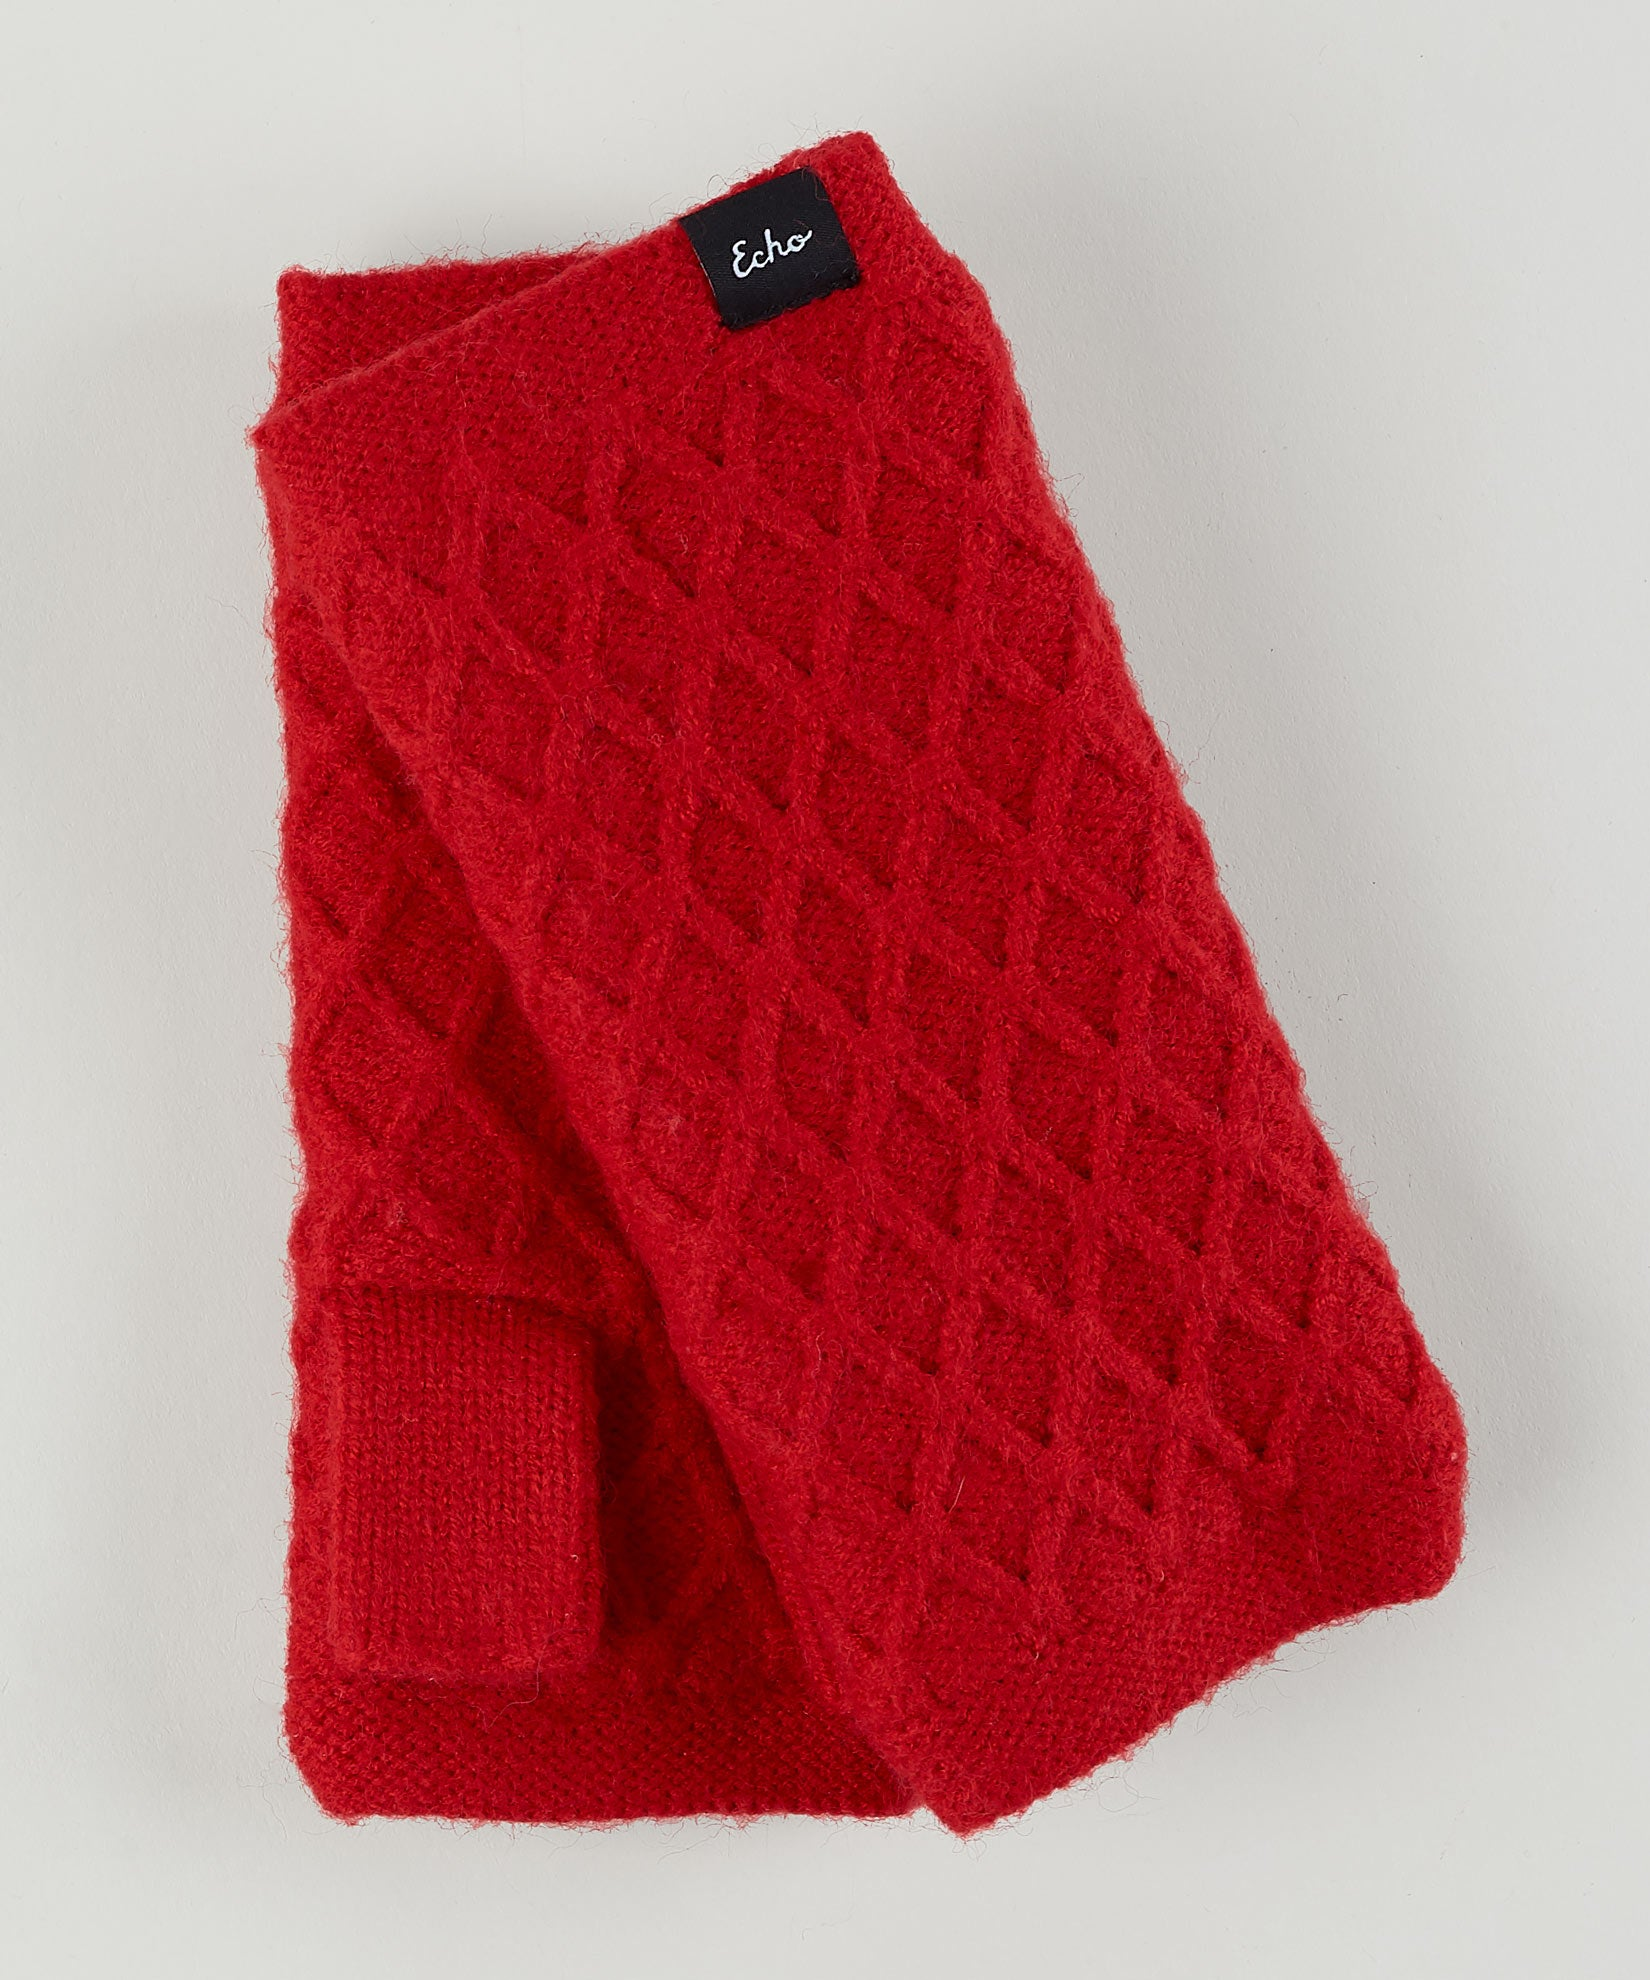 Cherry Red - Diamond Fingerless Glove